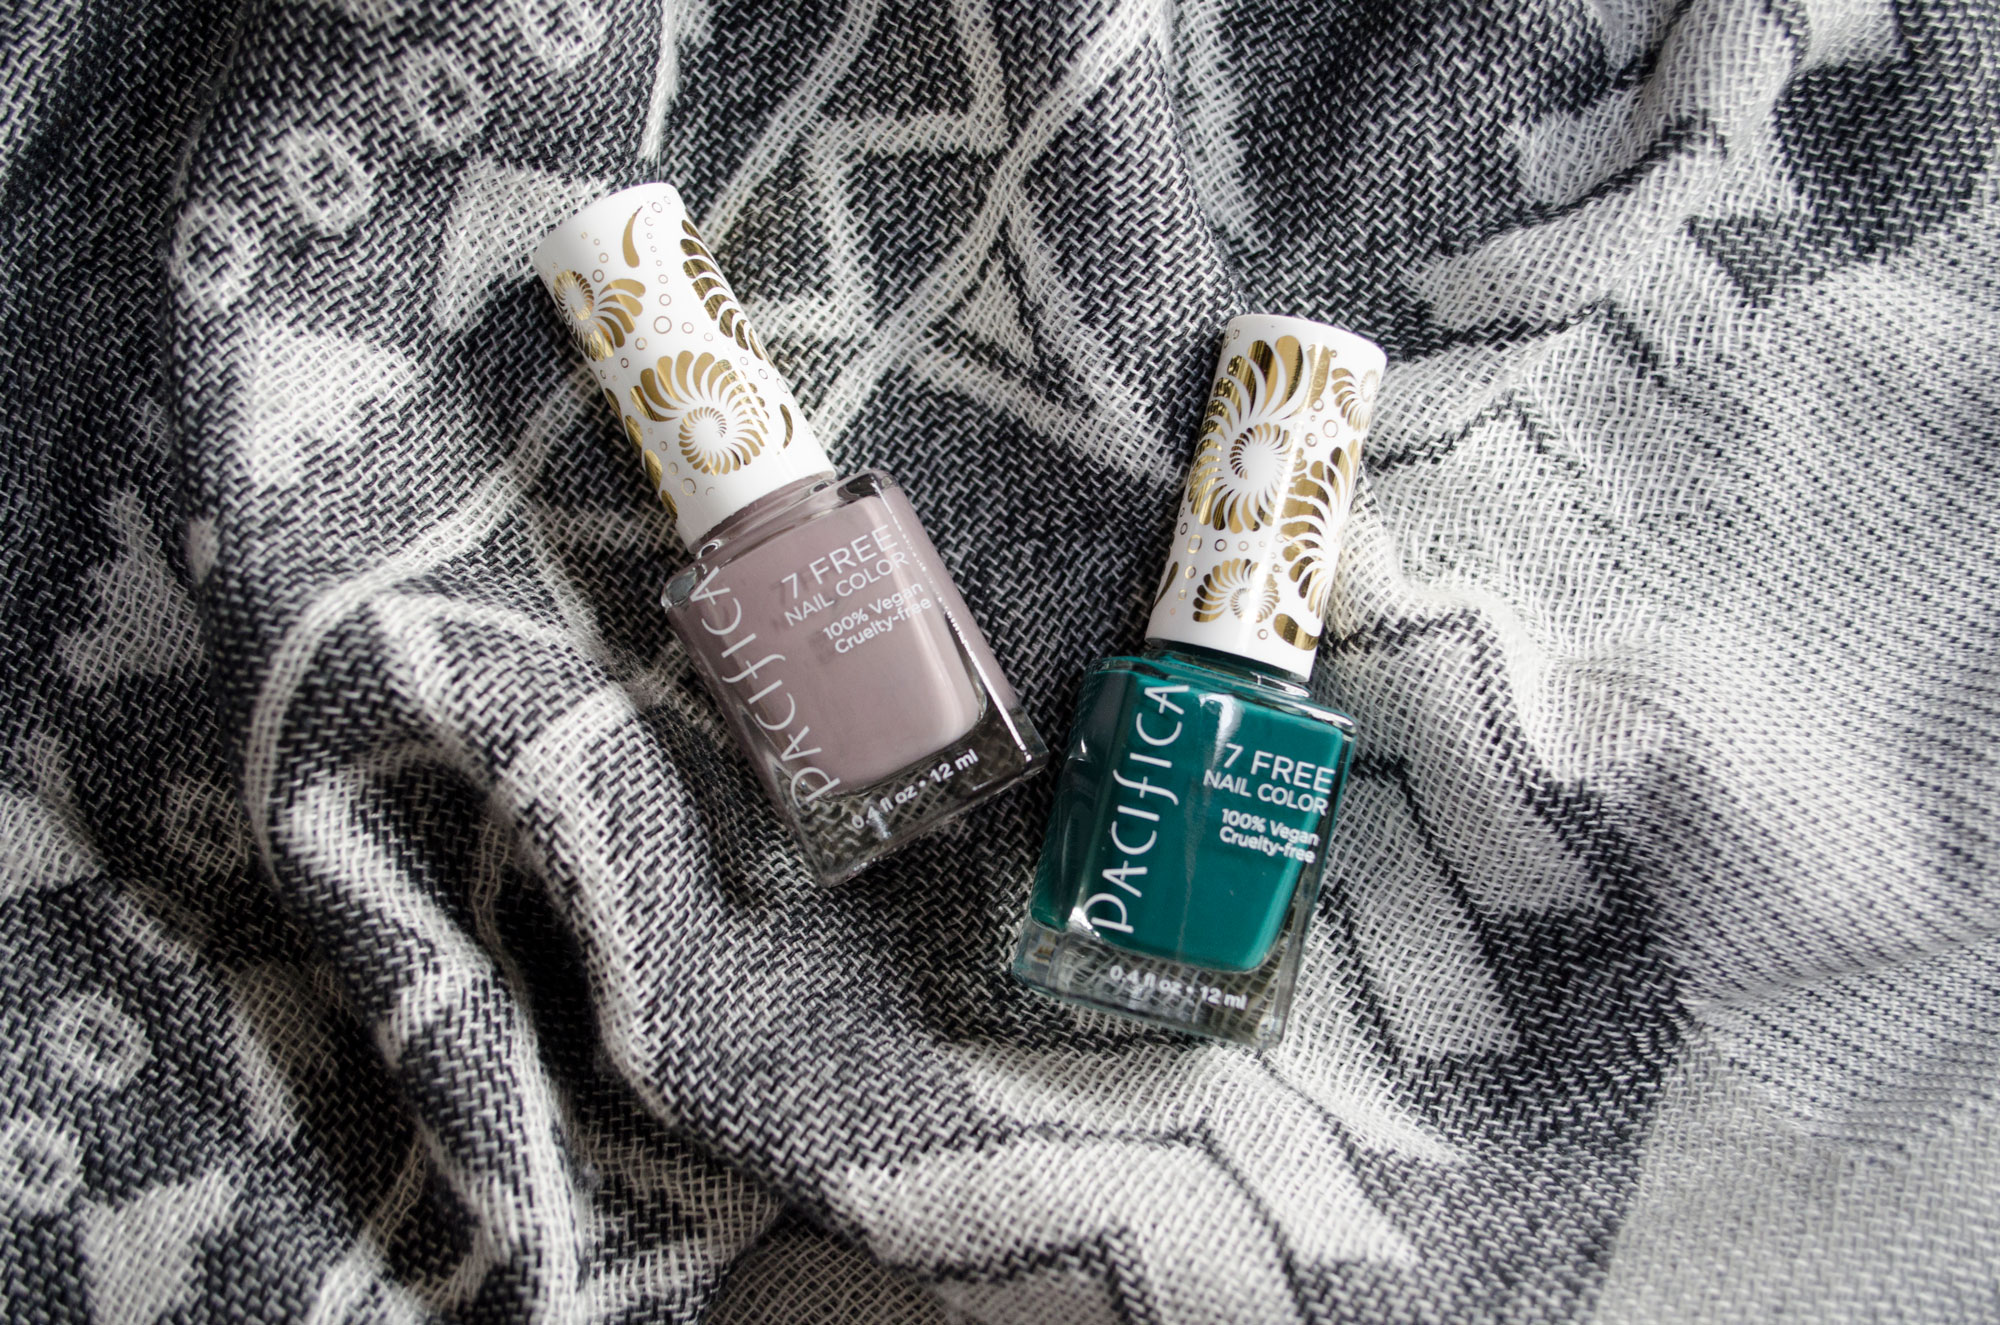 I Featured These Pacifica 7 Free Nail Colour Vegan Cruelty Polishes On My Insram A Couple Weeks Ago The Day Them Was After They